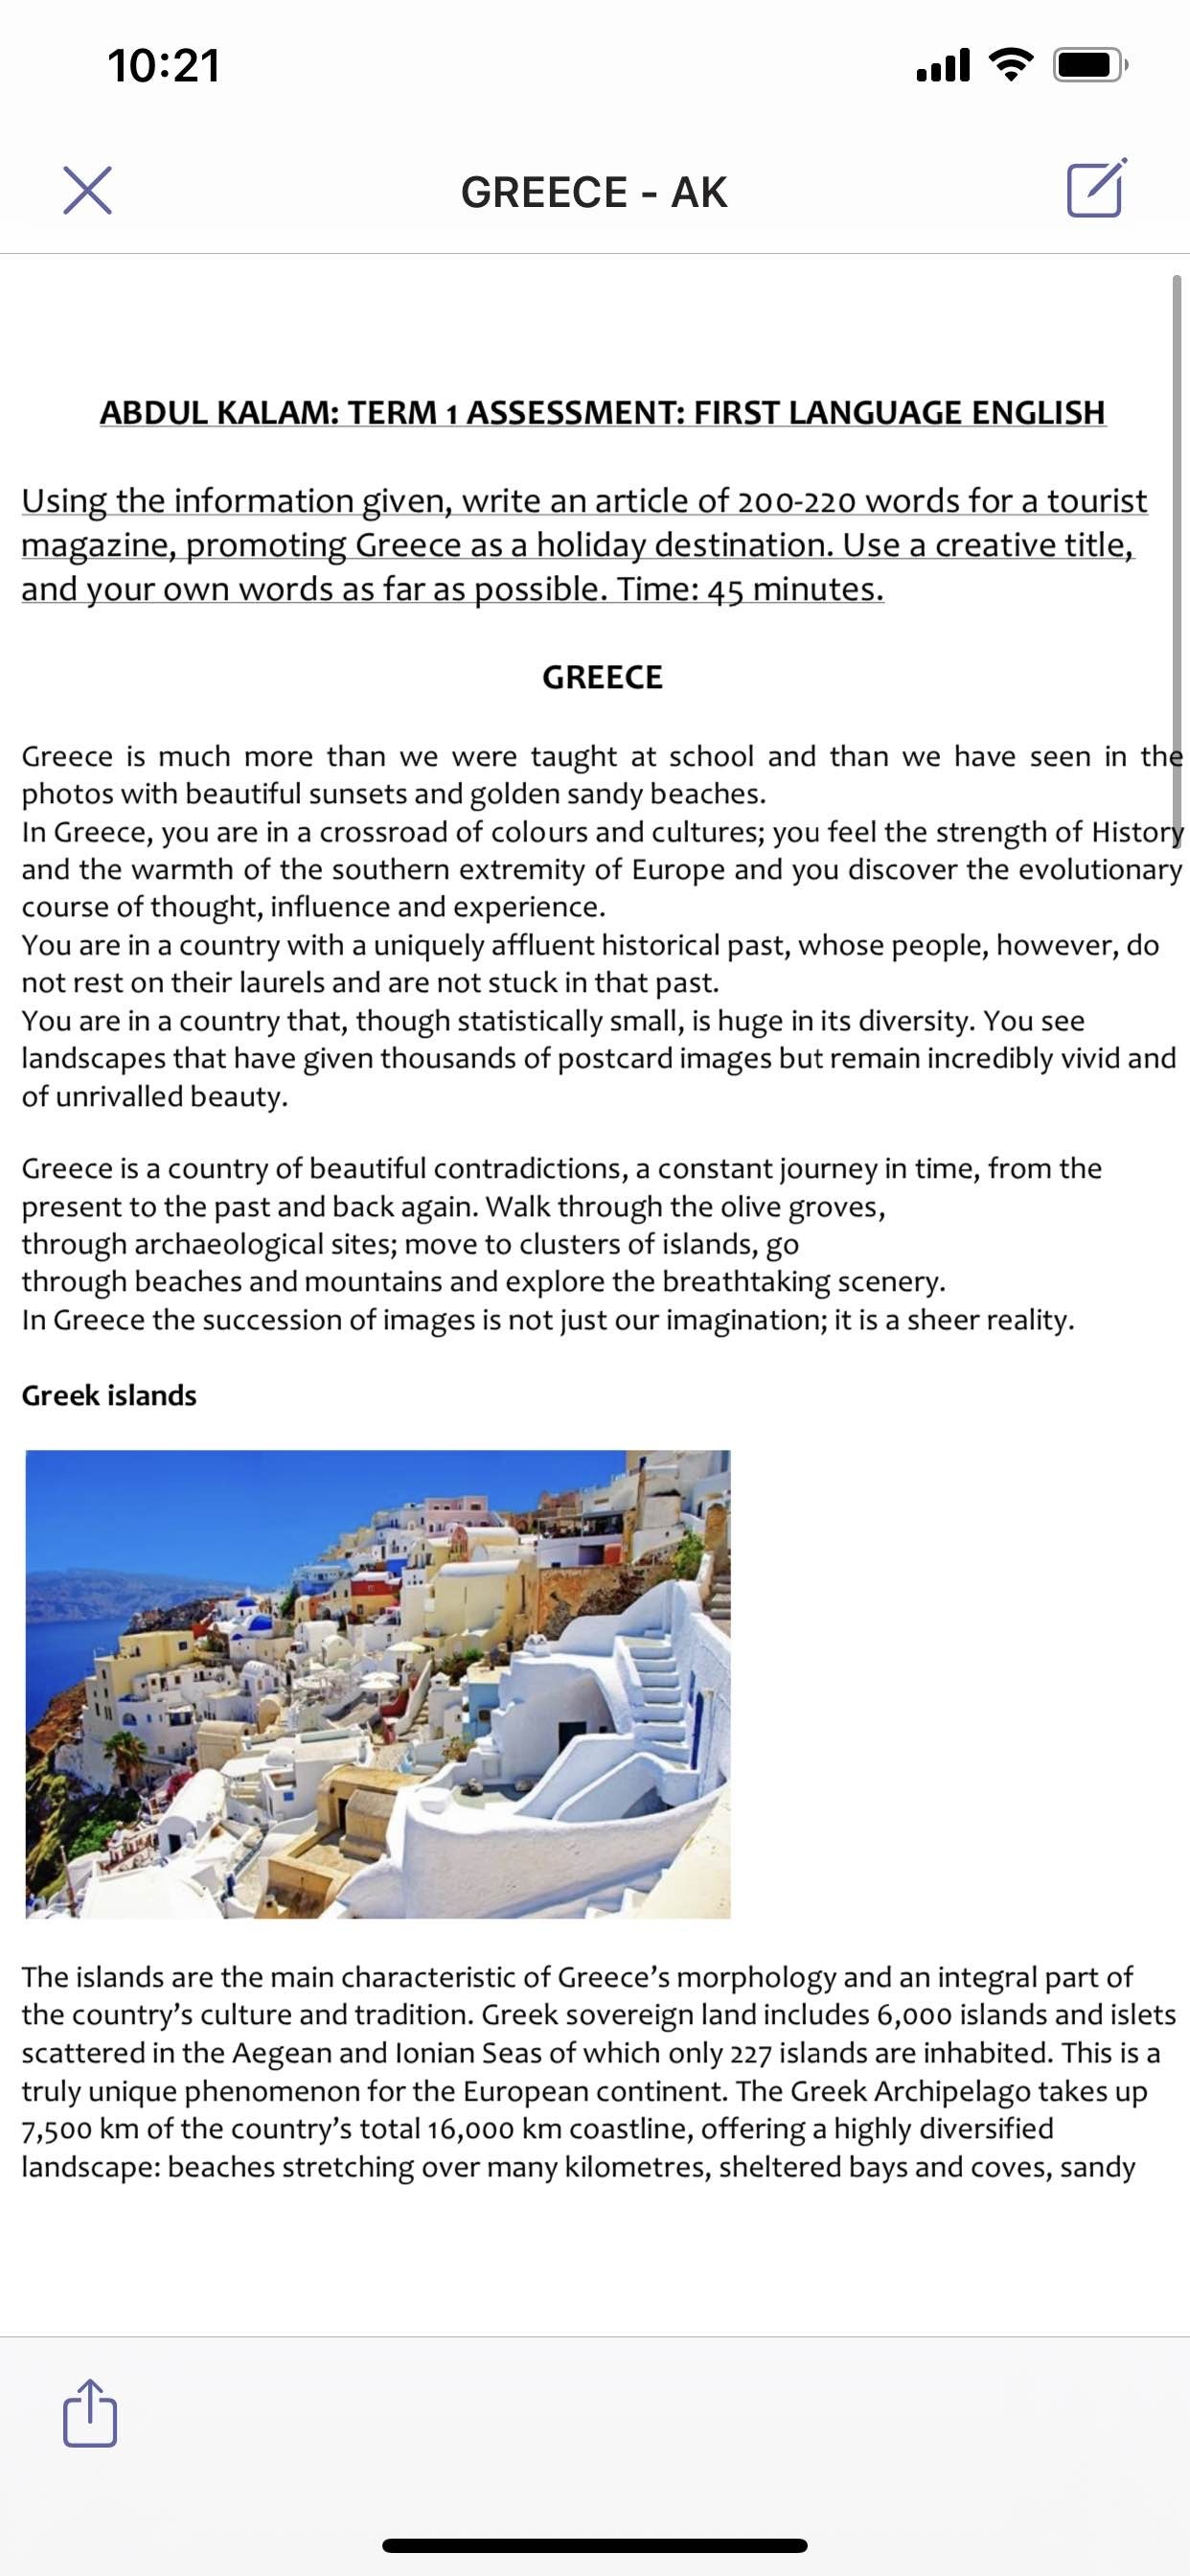 Tourist Magazine Promoting Greece As A Holiday